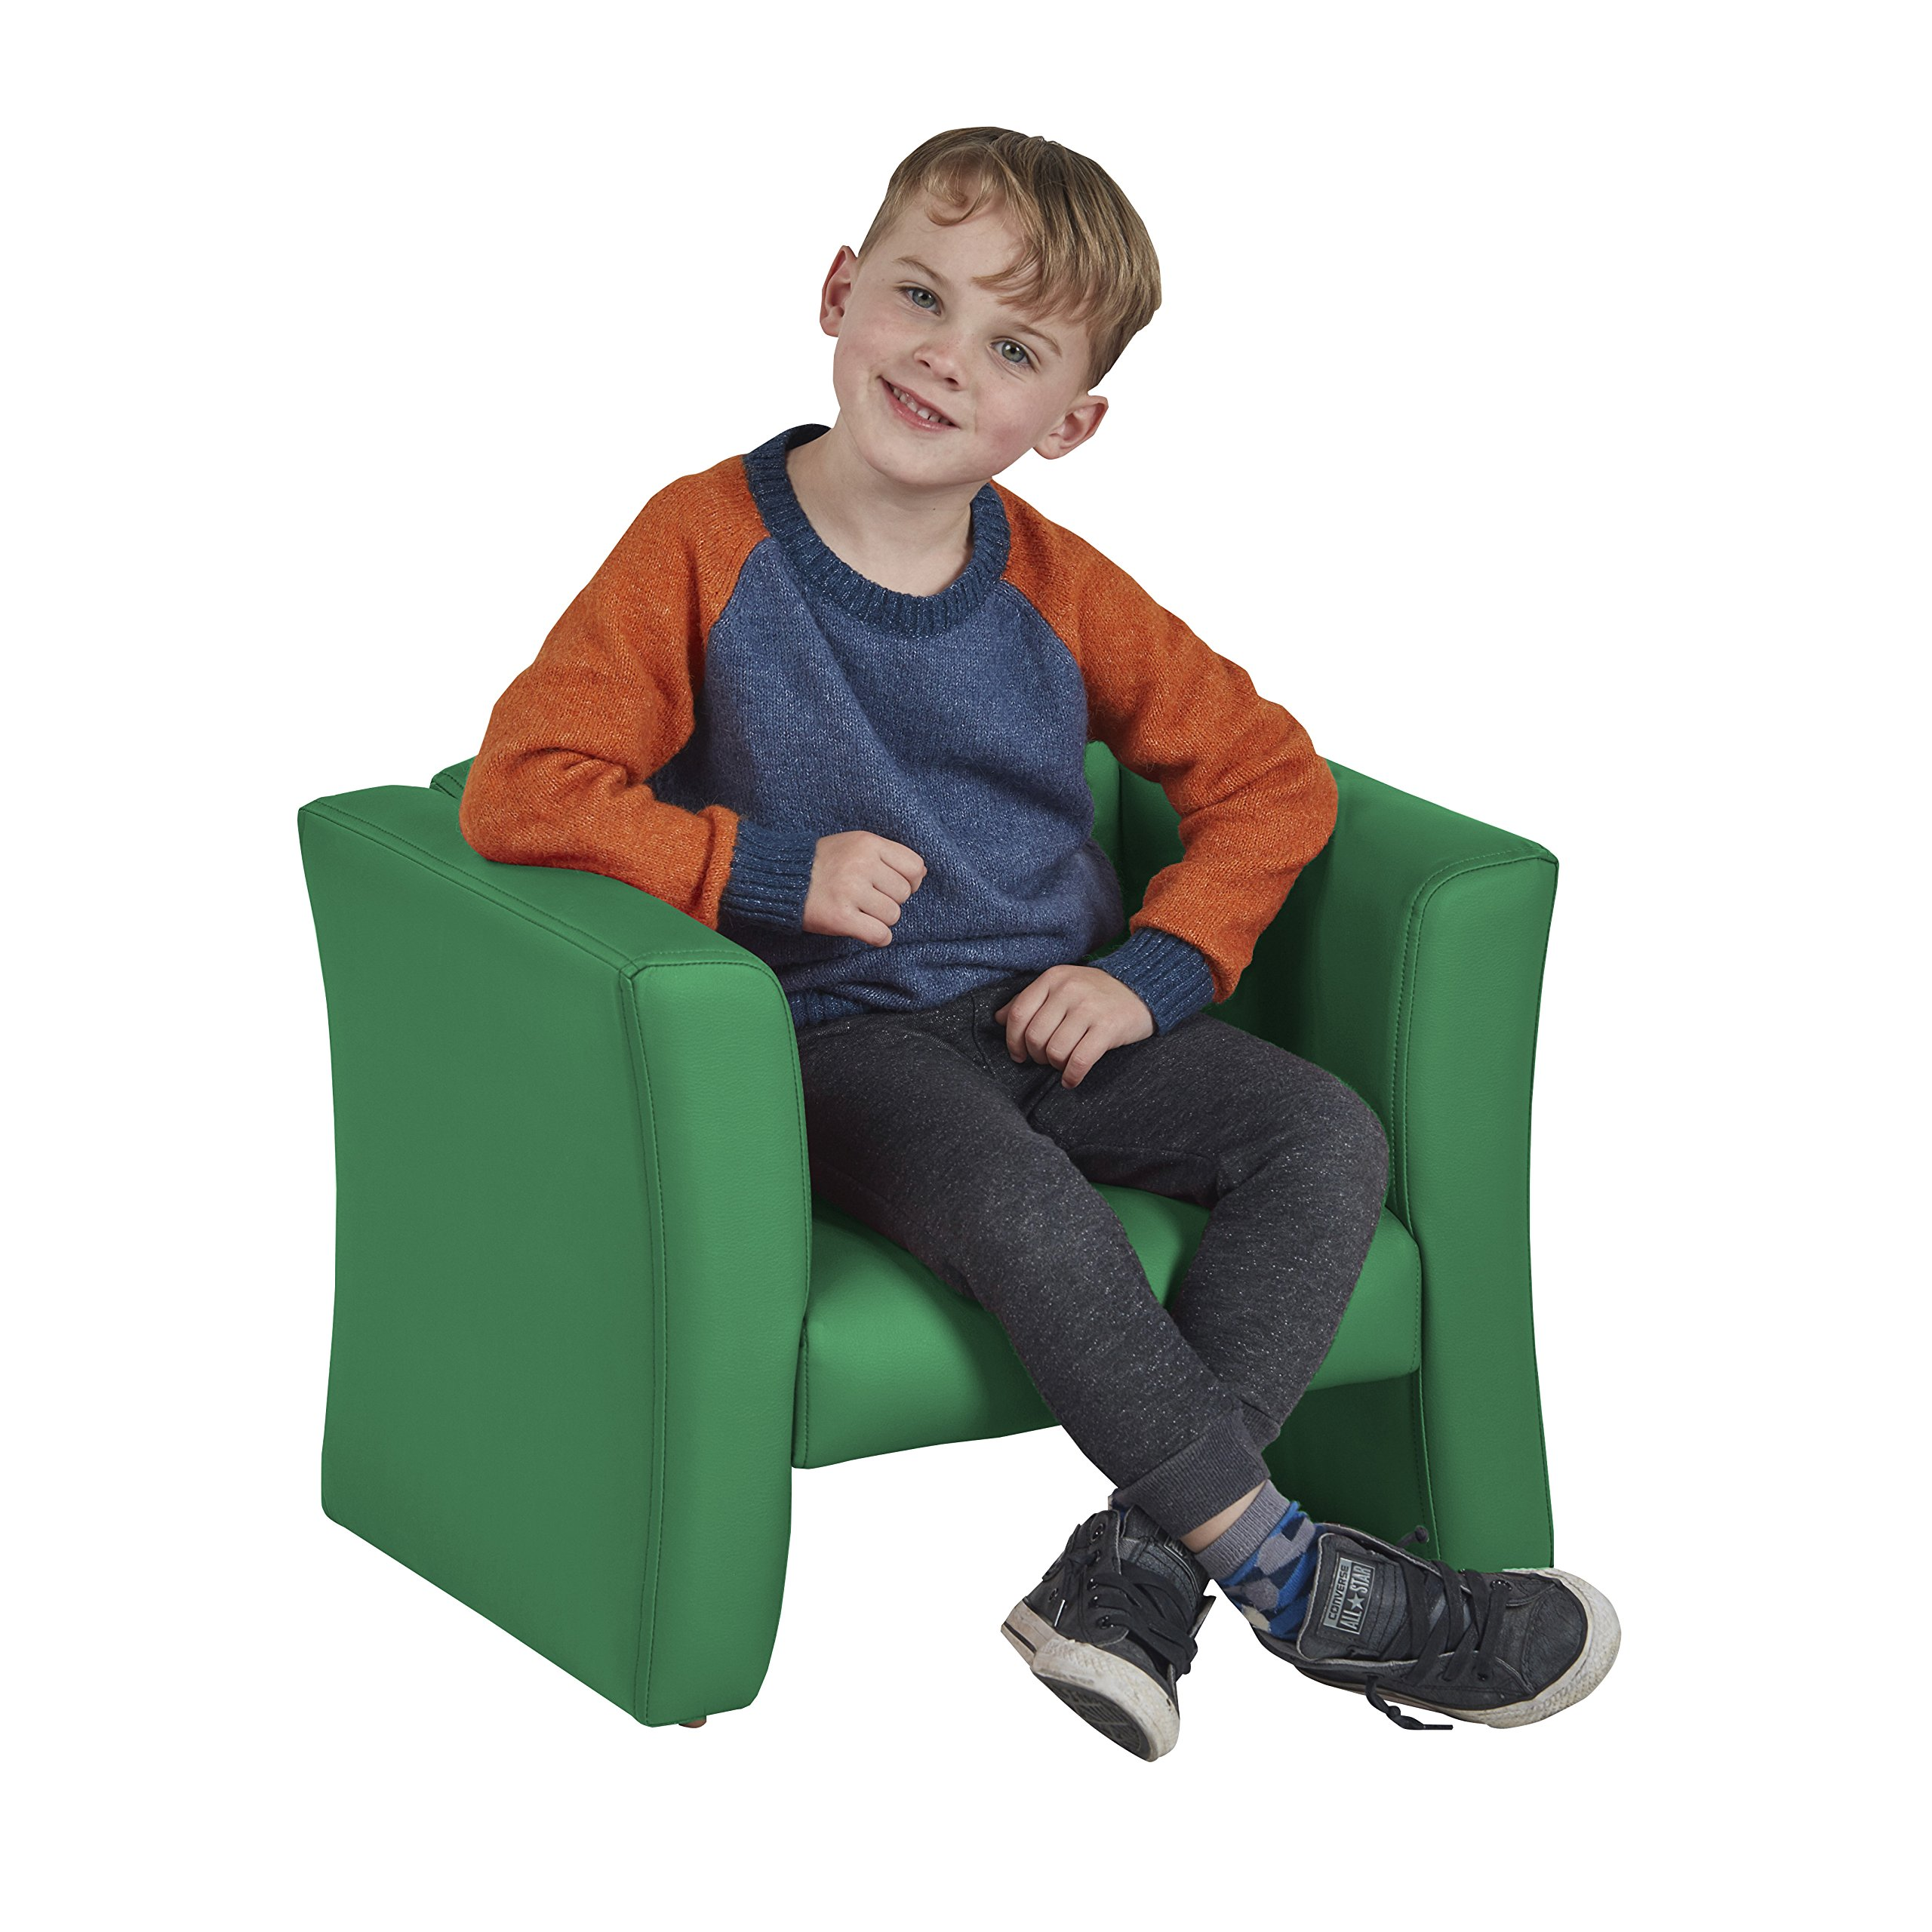 ECR4Kids SoftZone Gum Drop Upholstered Chair for Kids - Daycare, Homeschool, Classroom Furniture, Home Decor - Green